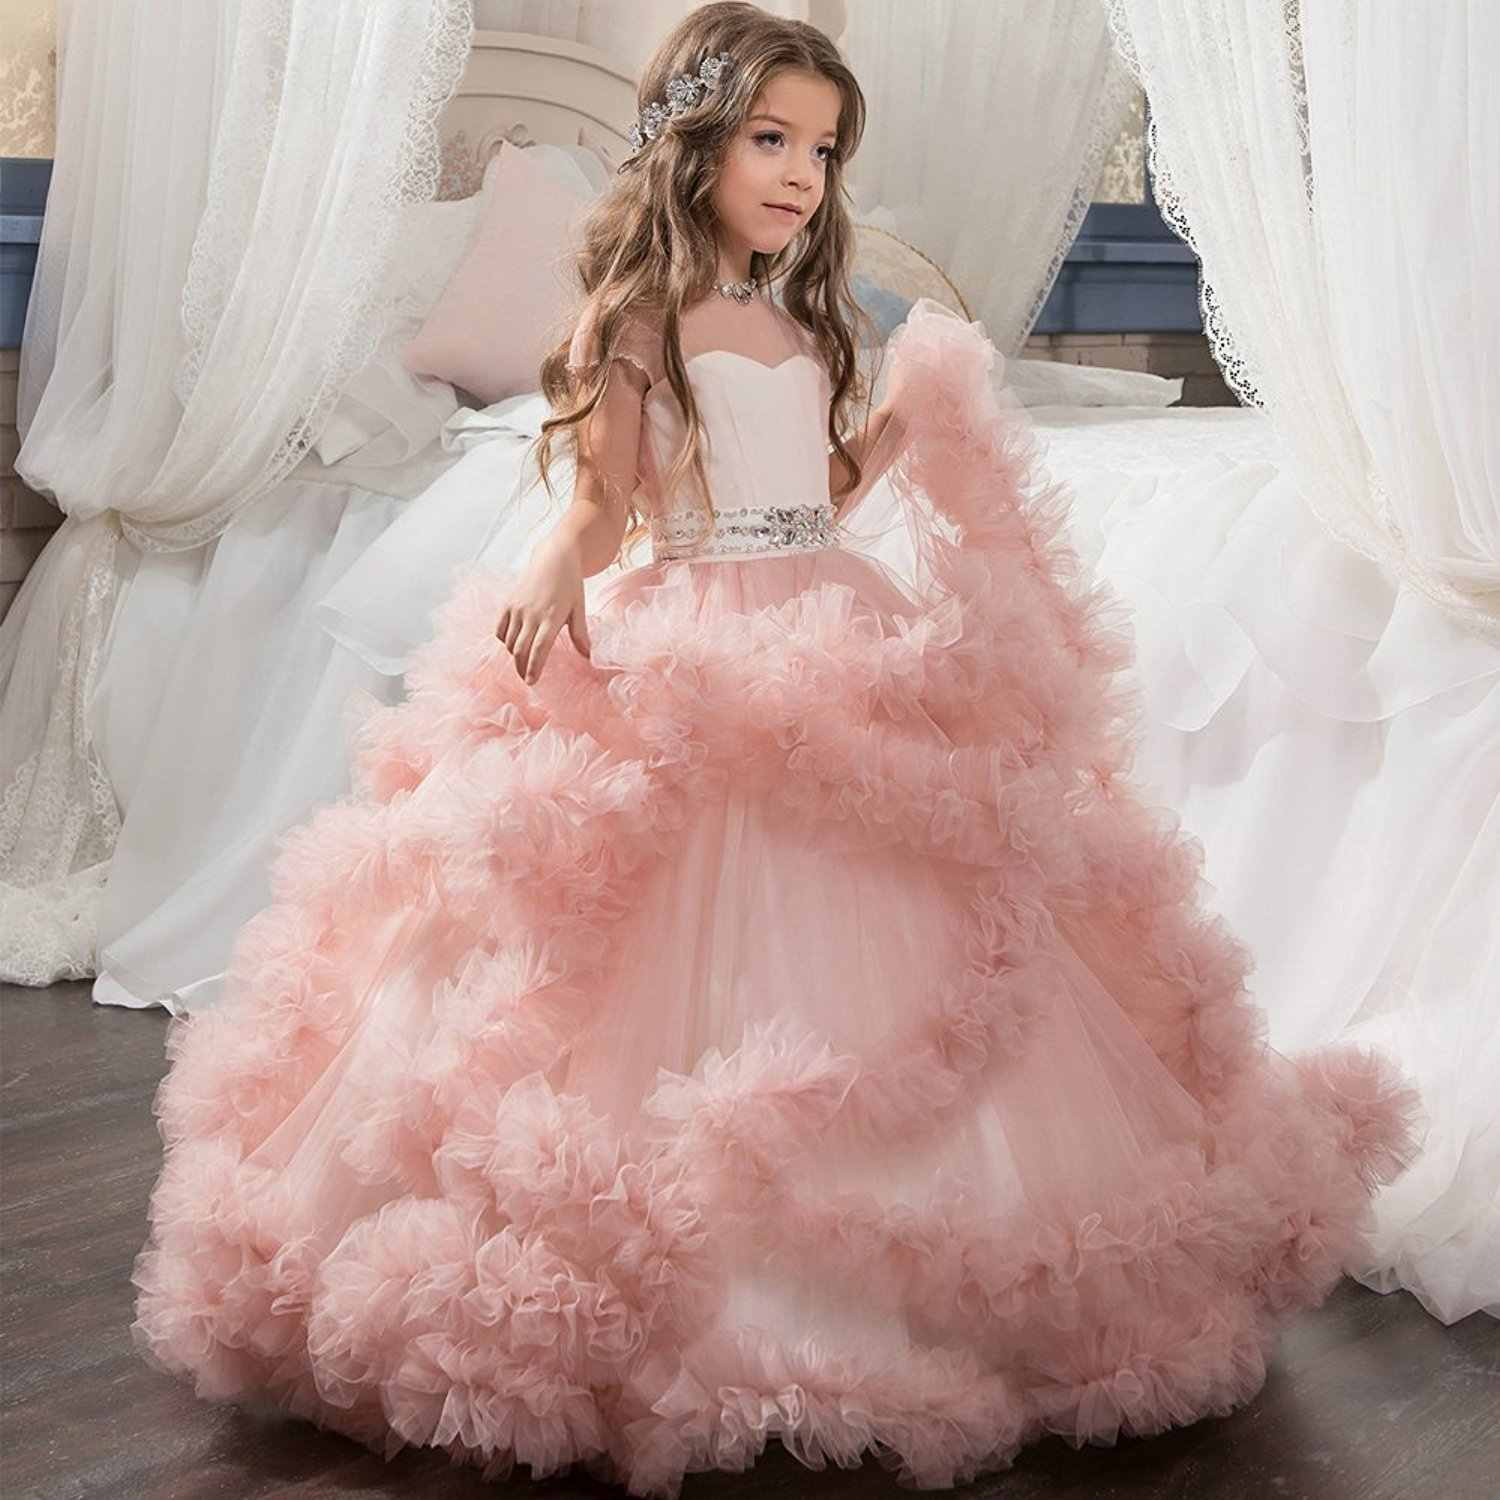 7047c05ae611 Detail Feedback Questions about ABYABYGO Luxury Princess Christmas ...